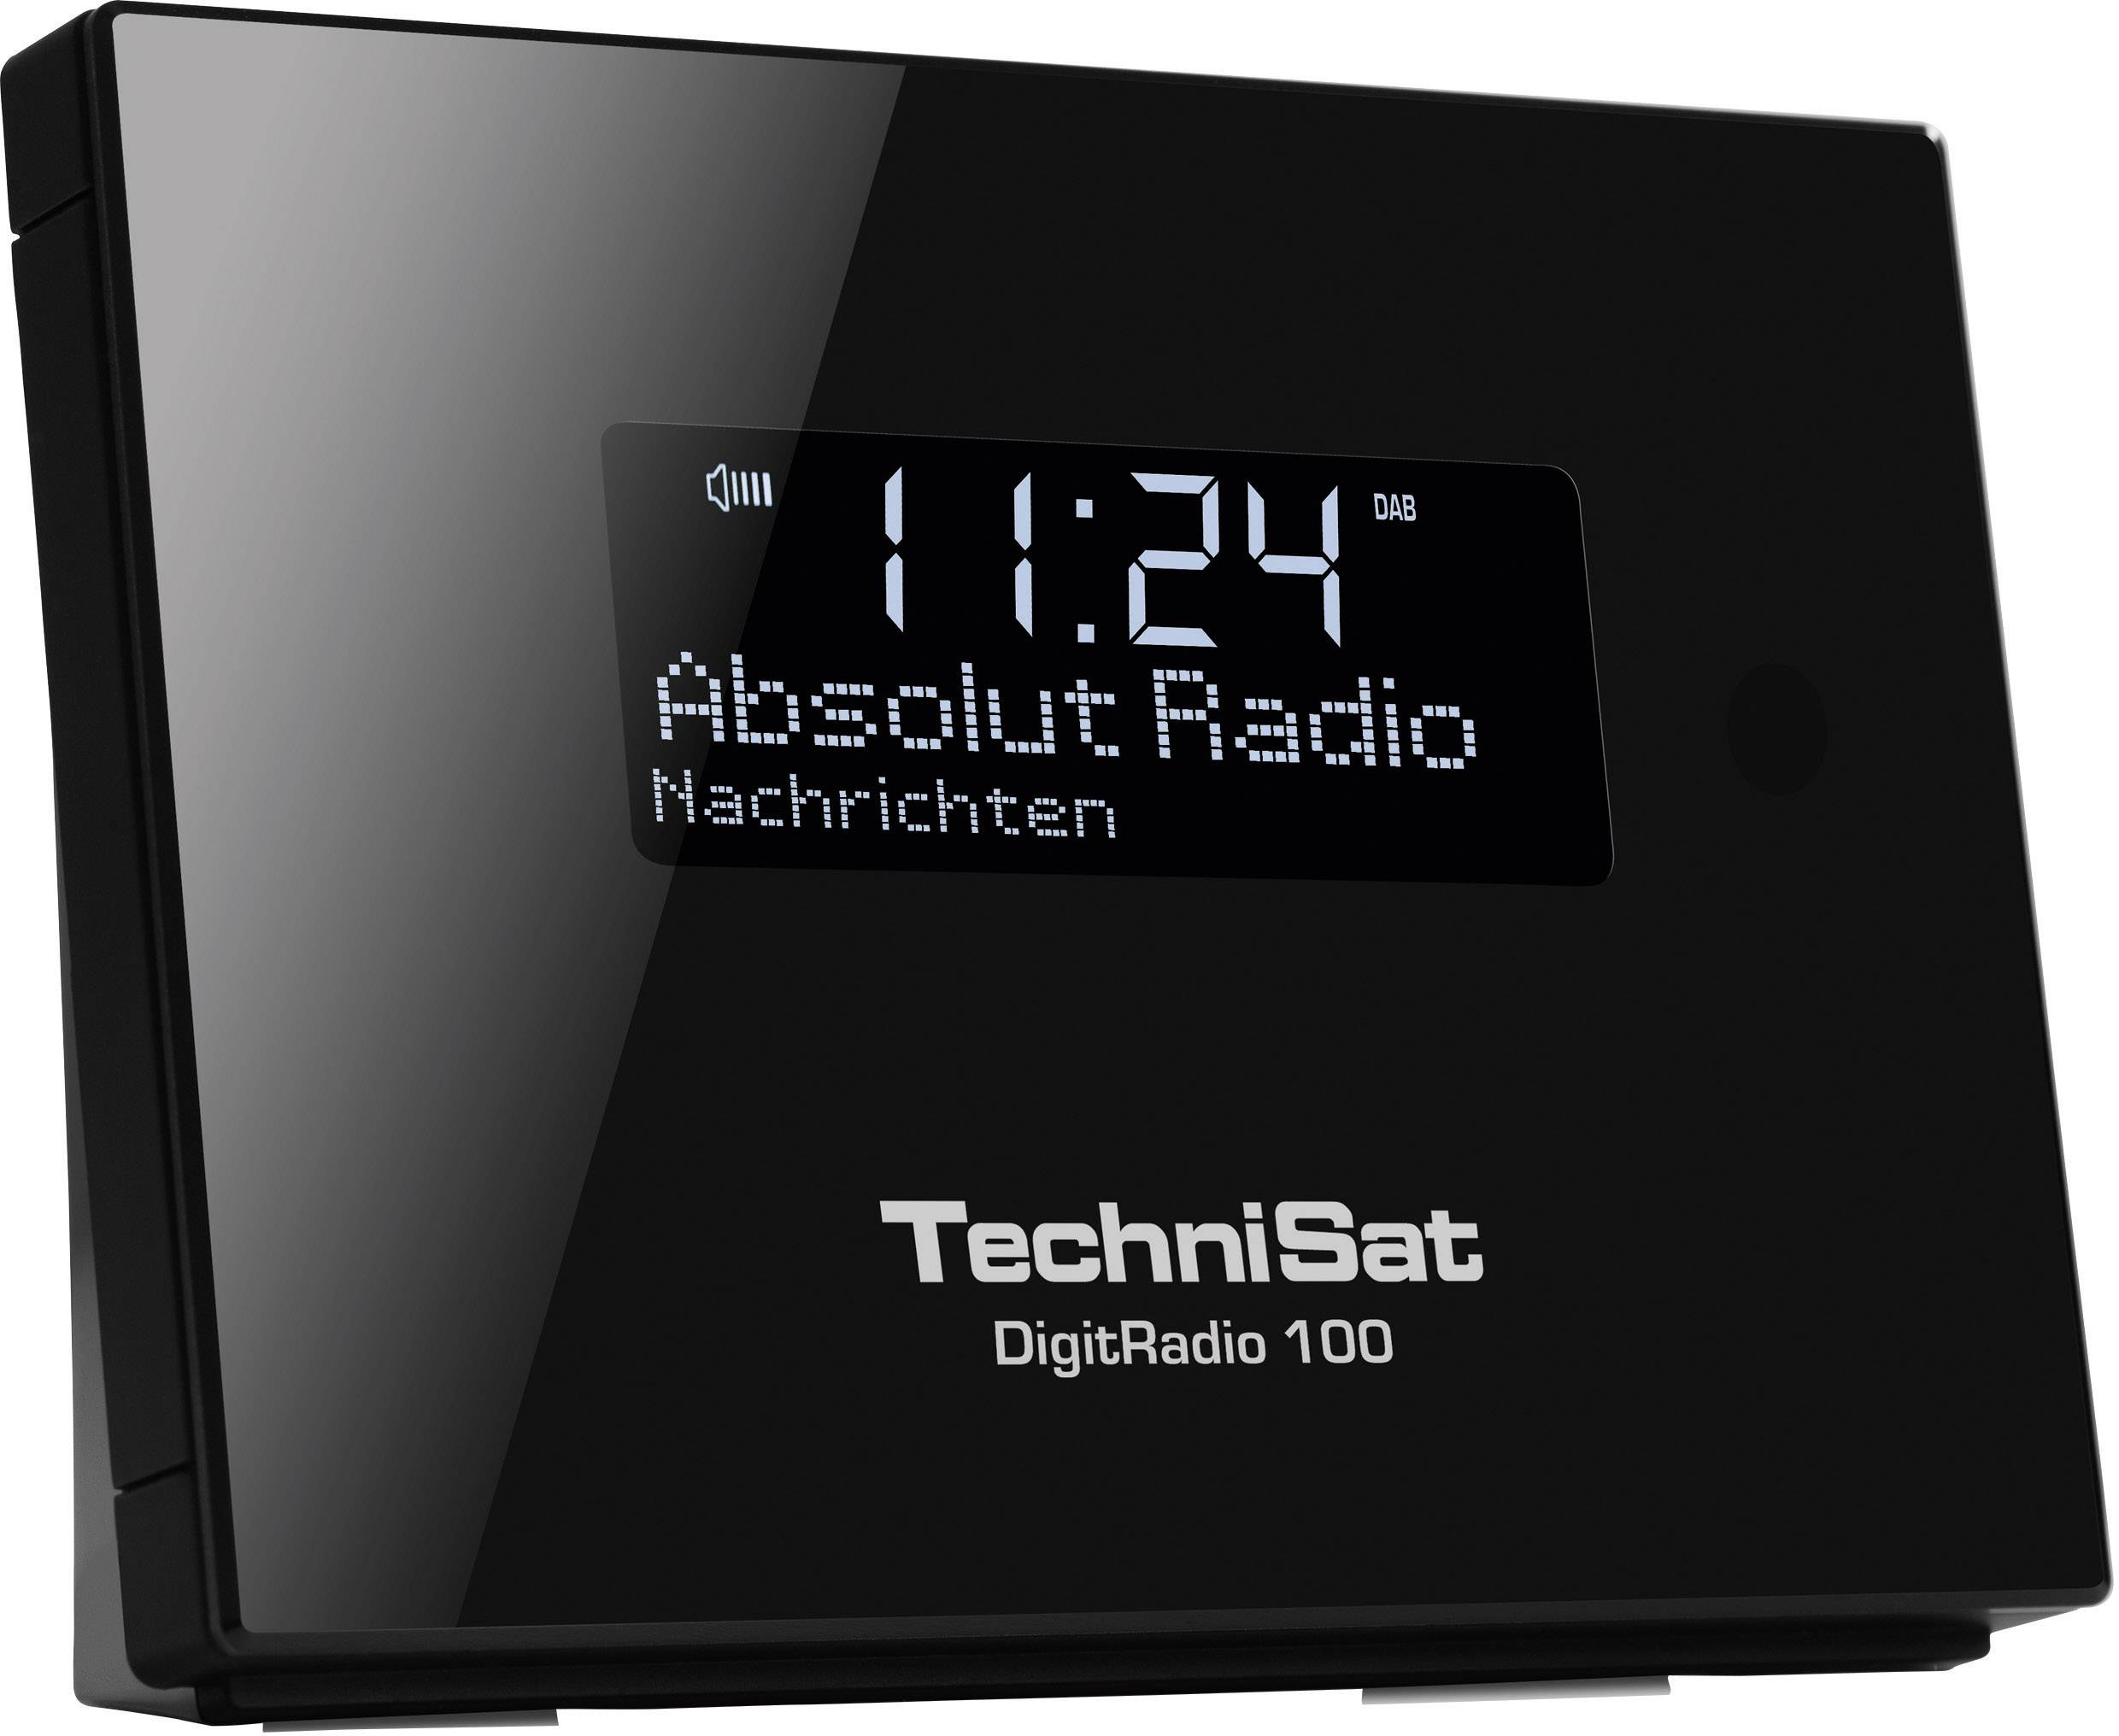 technisat digitradio 100 dab radio adapter bluetooth dab ukw schwarz kaufen. Black Bedroom Furniture Sets. Home Design Ideas